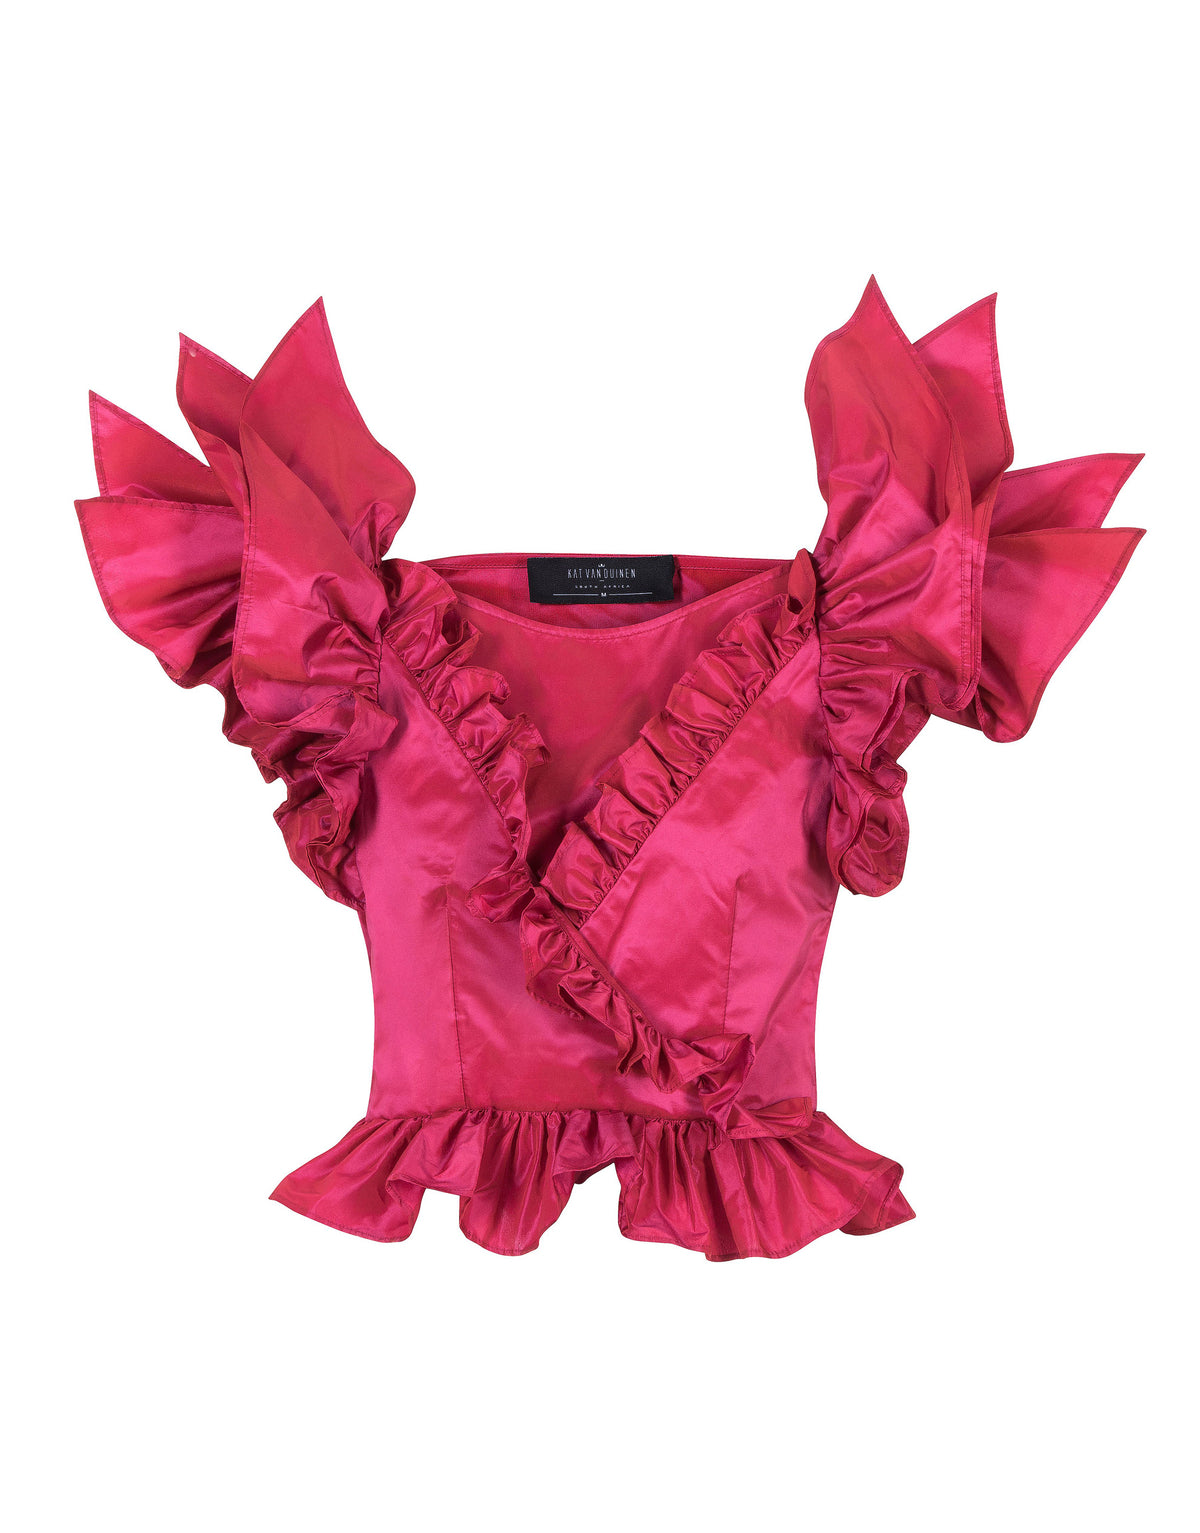 Strelitzia Reginae Cross Frill Blouse | Top